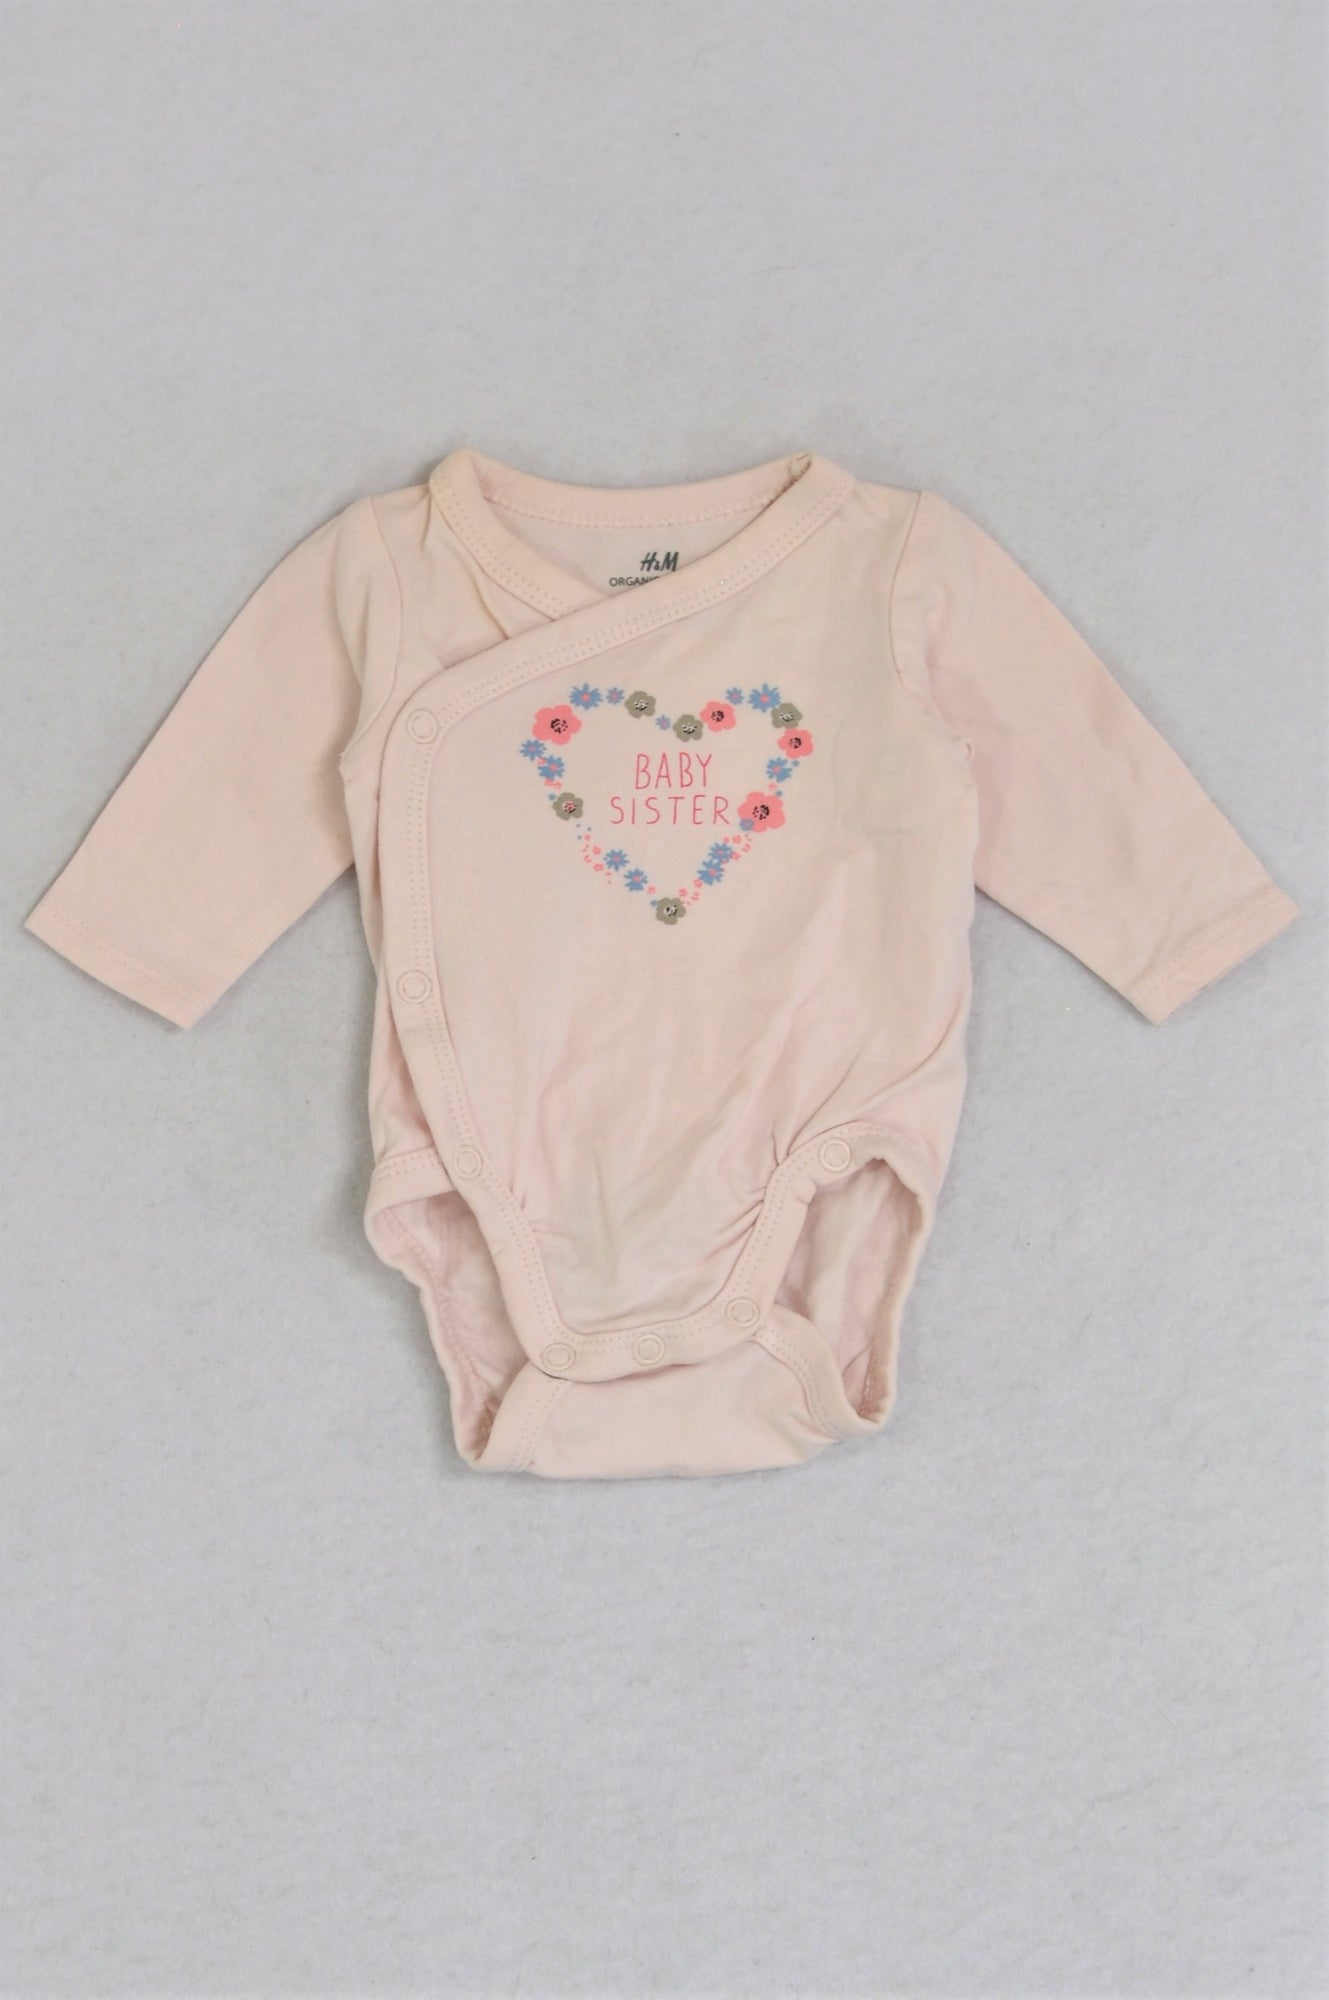 H&M Organic Cotton Light Pink Baby Sister Long Sleeve Baby Grow Girls 0-1 month